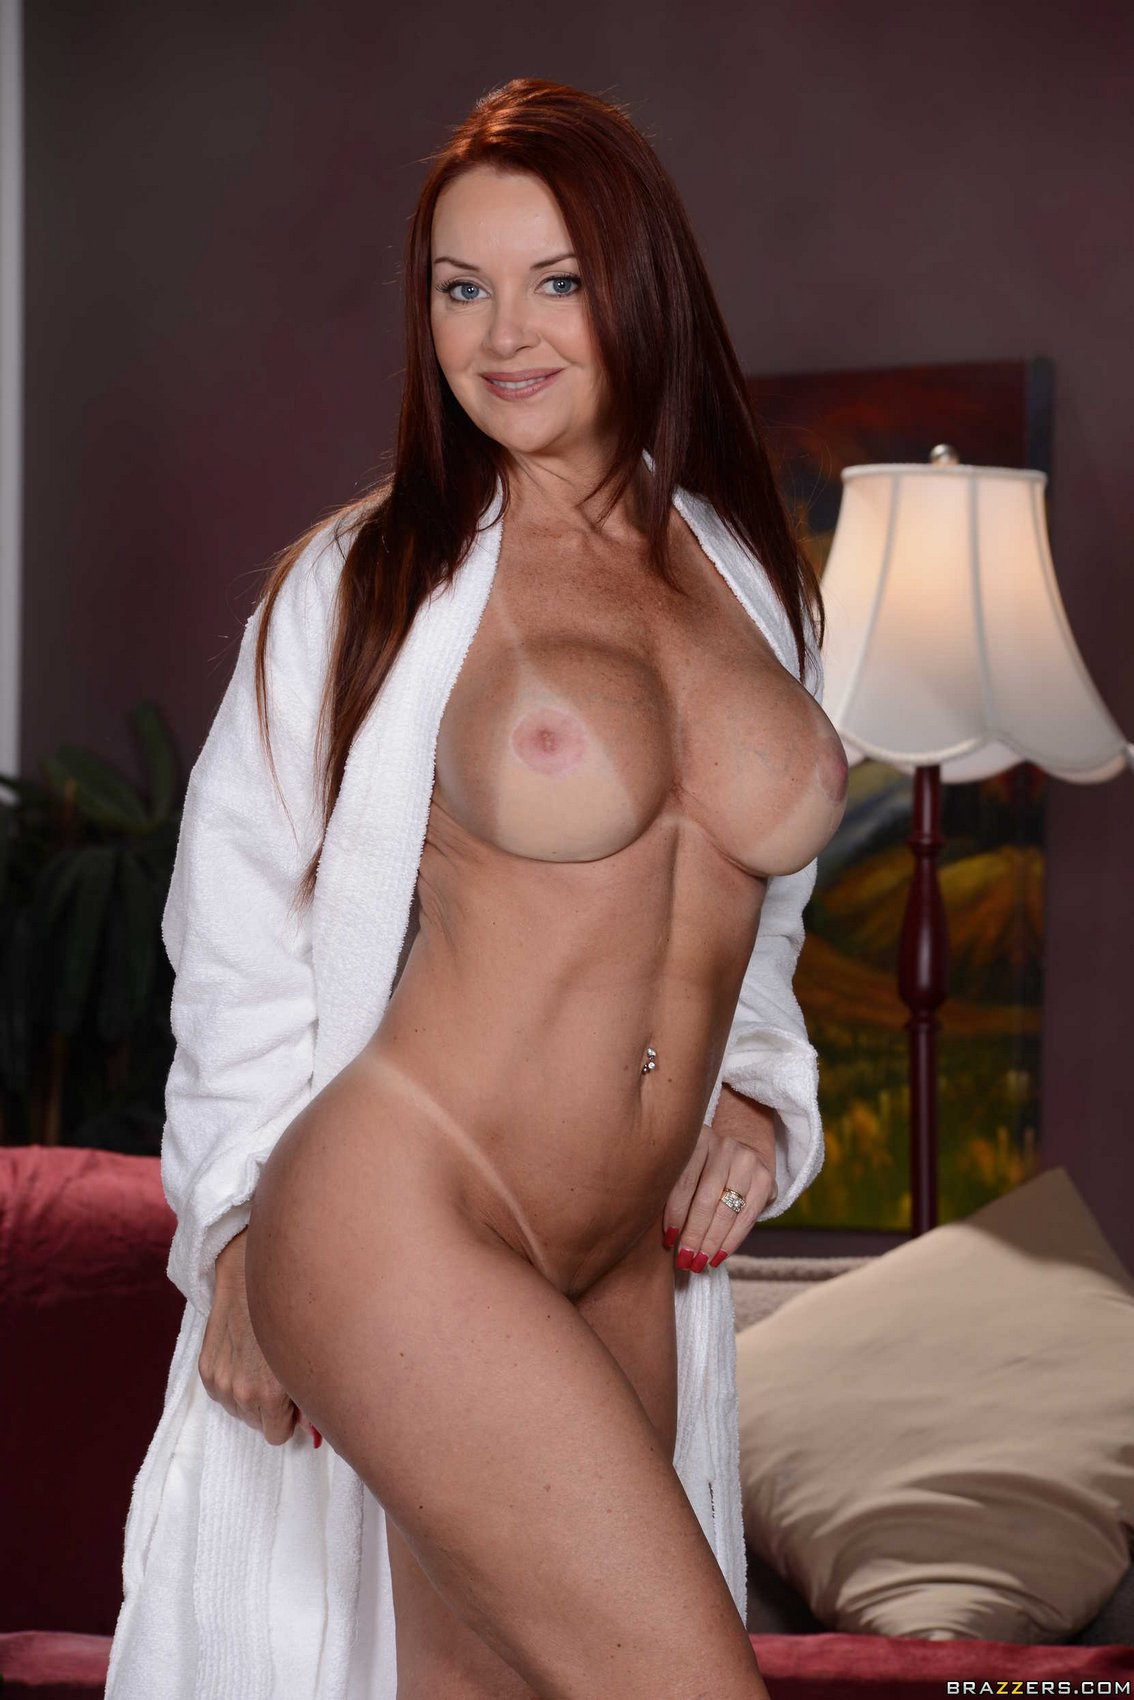 Janet mason porn star nude are not